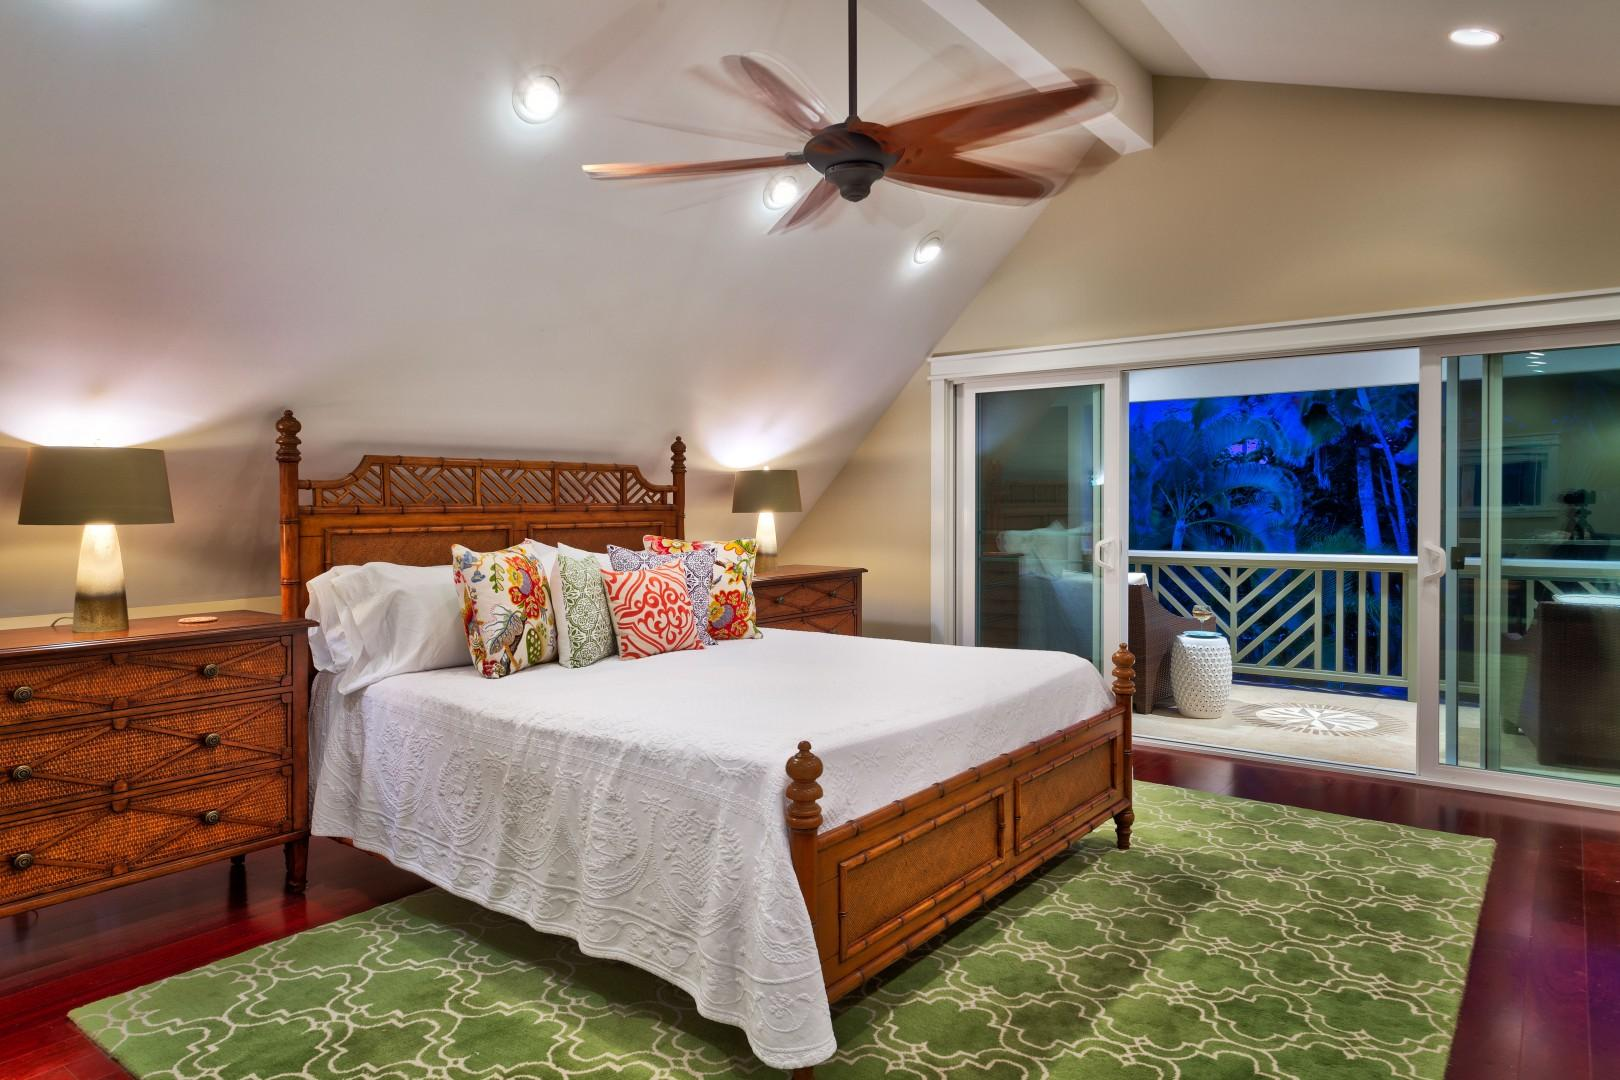 Upstairs, the master bedroom comprises an entire half of the villa.